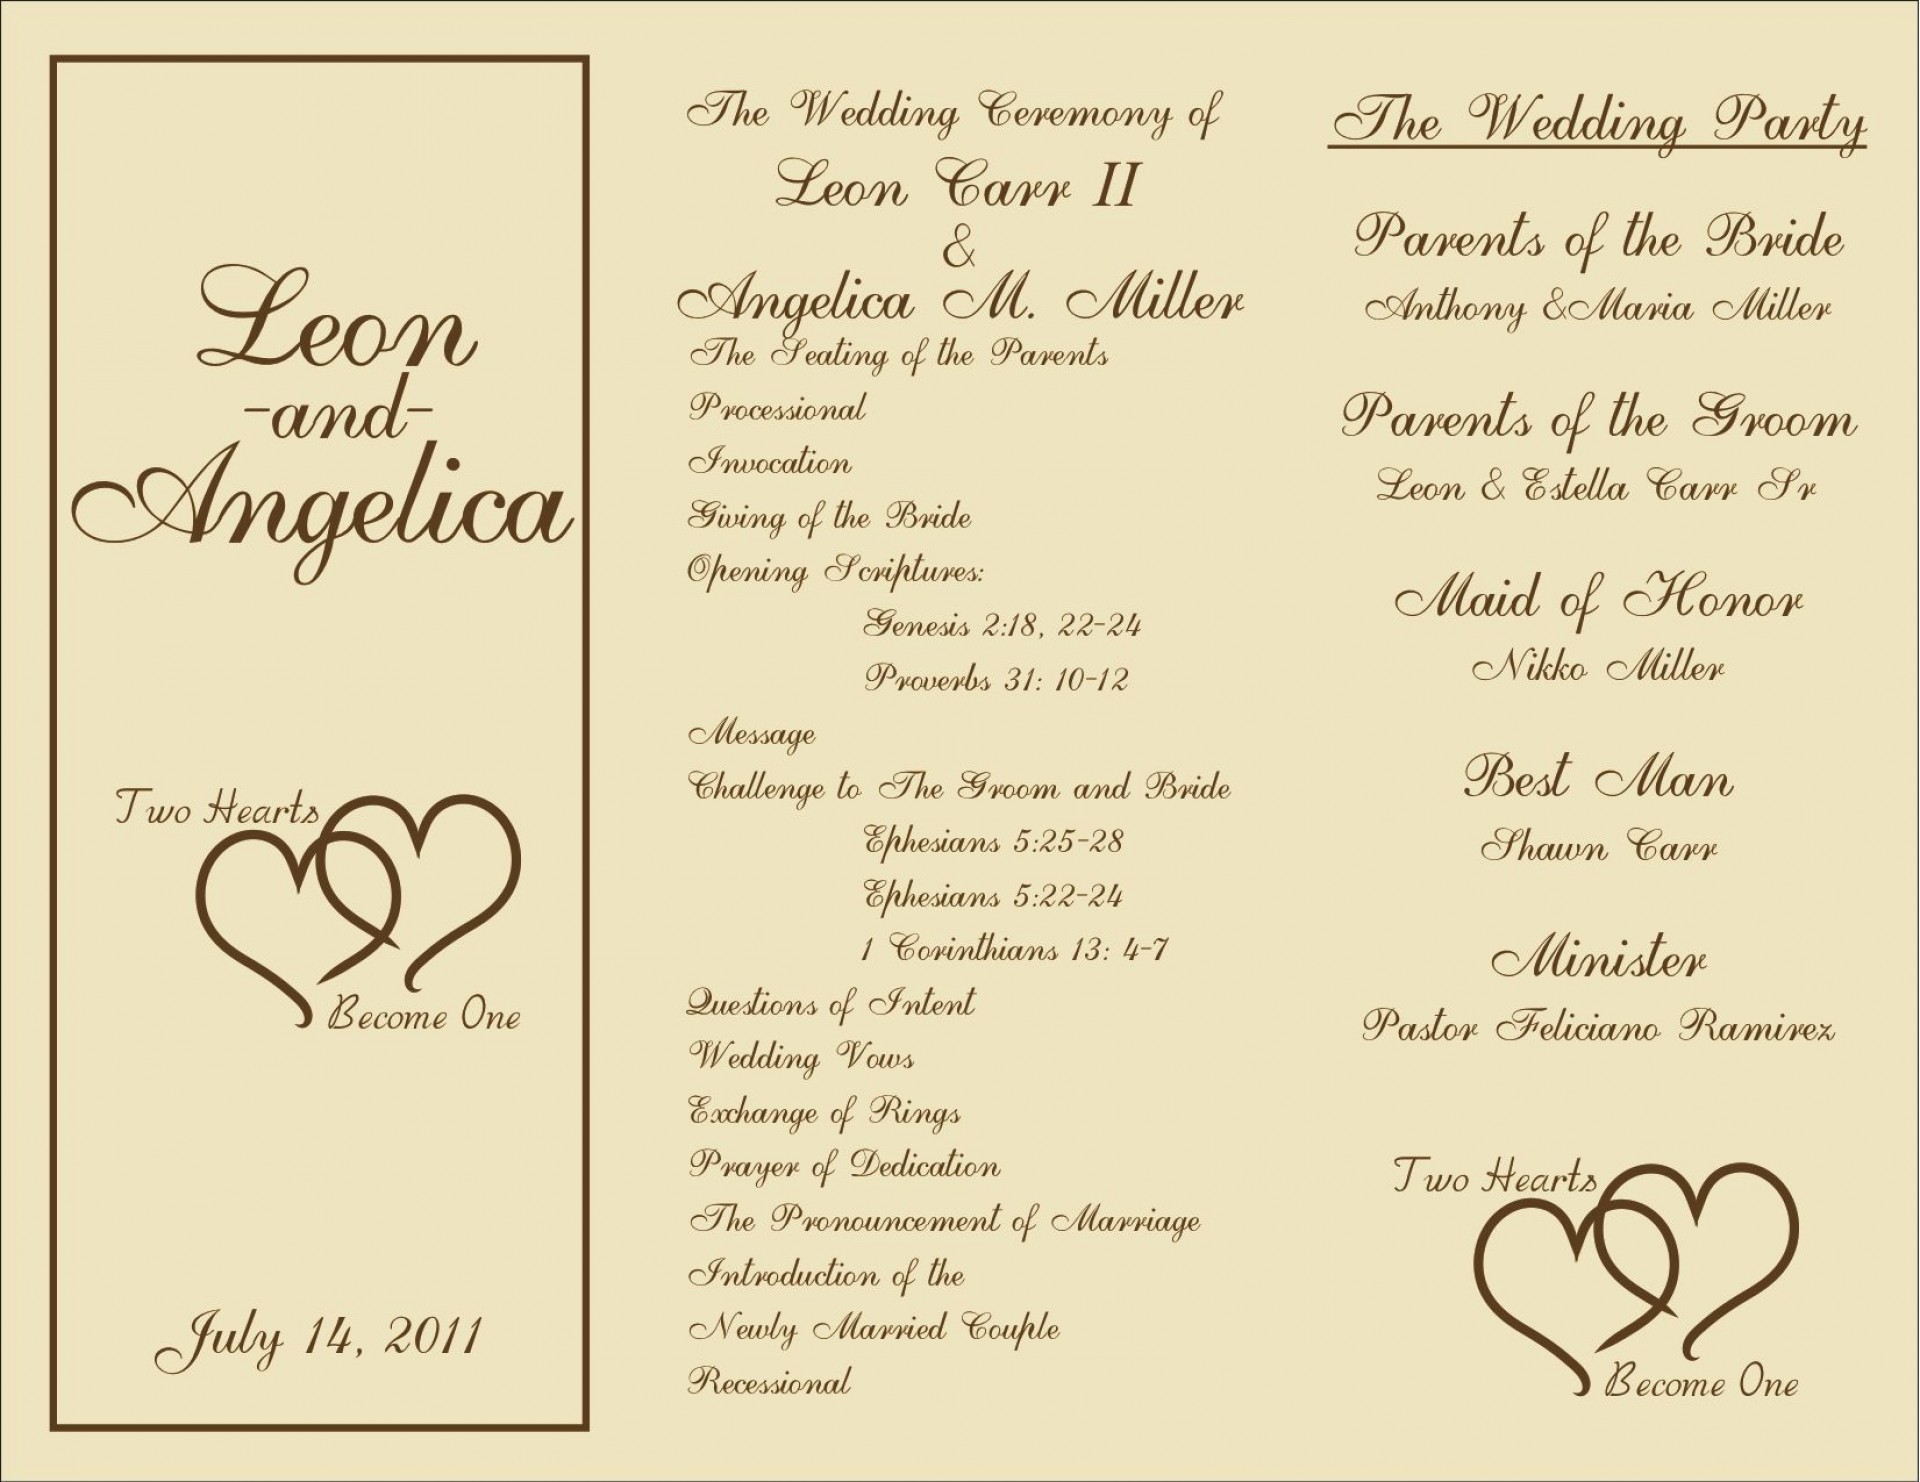 008 Wondrou Free Downloadable Wedding Program Template High Resolution  Templates That Can Be Printed Printable Fall Reception1920